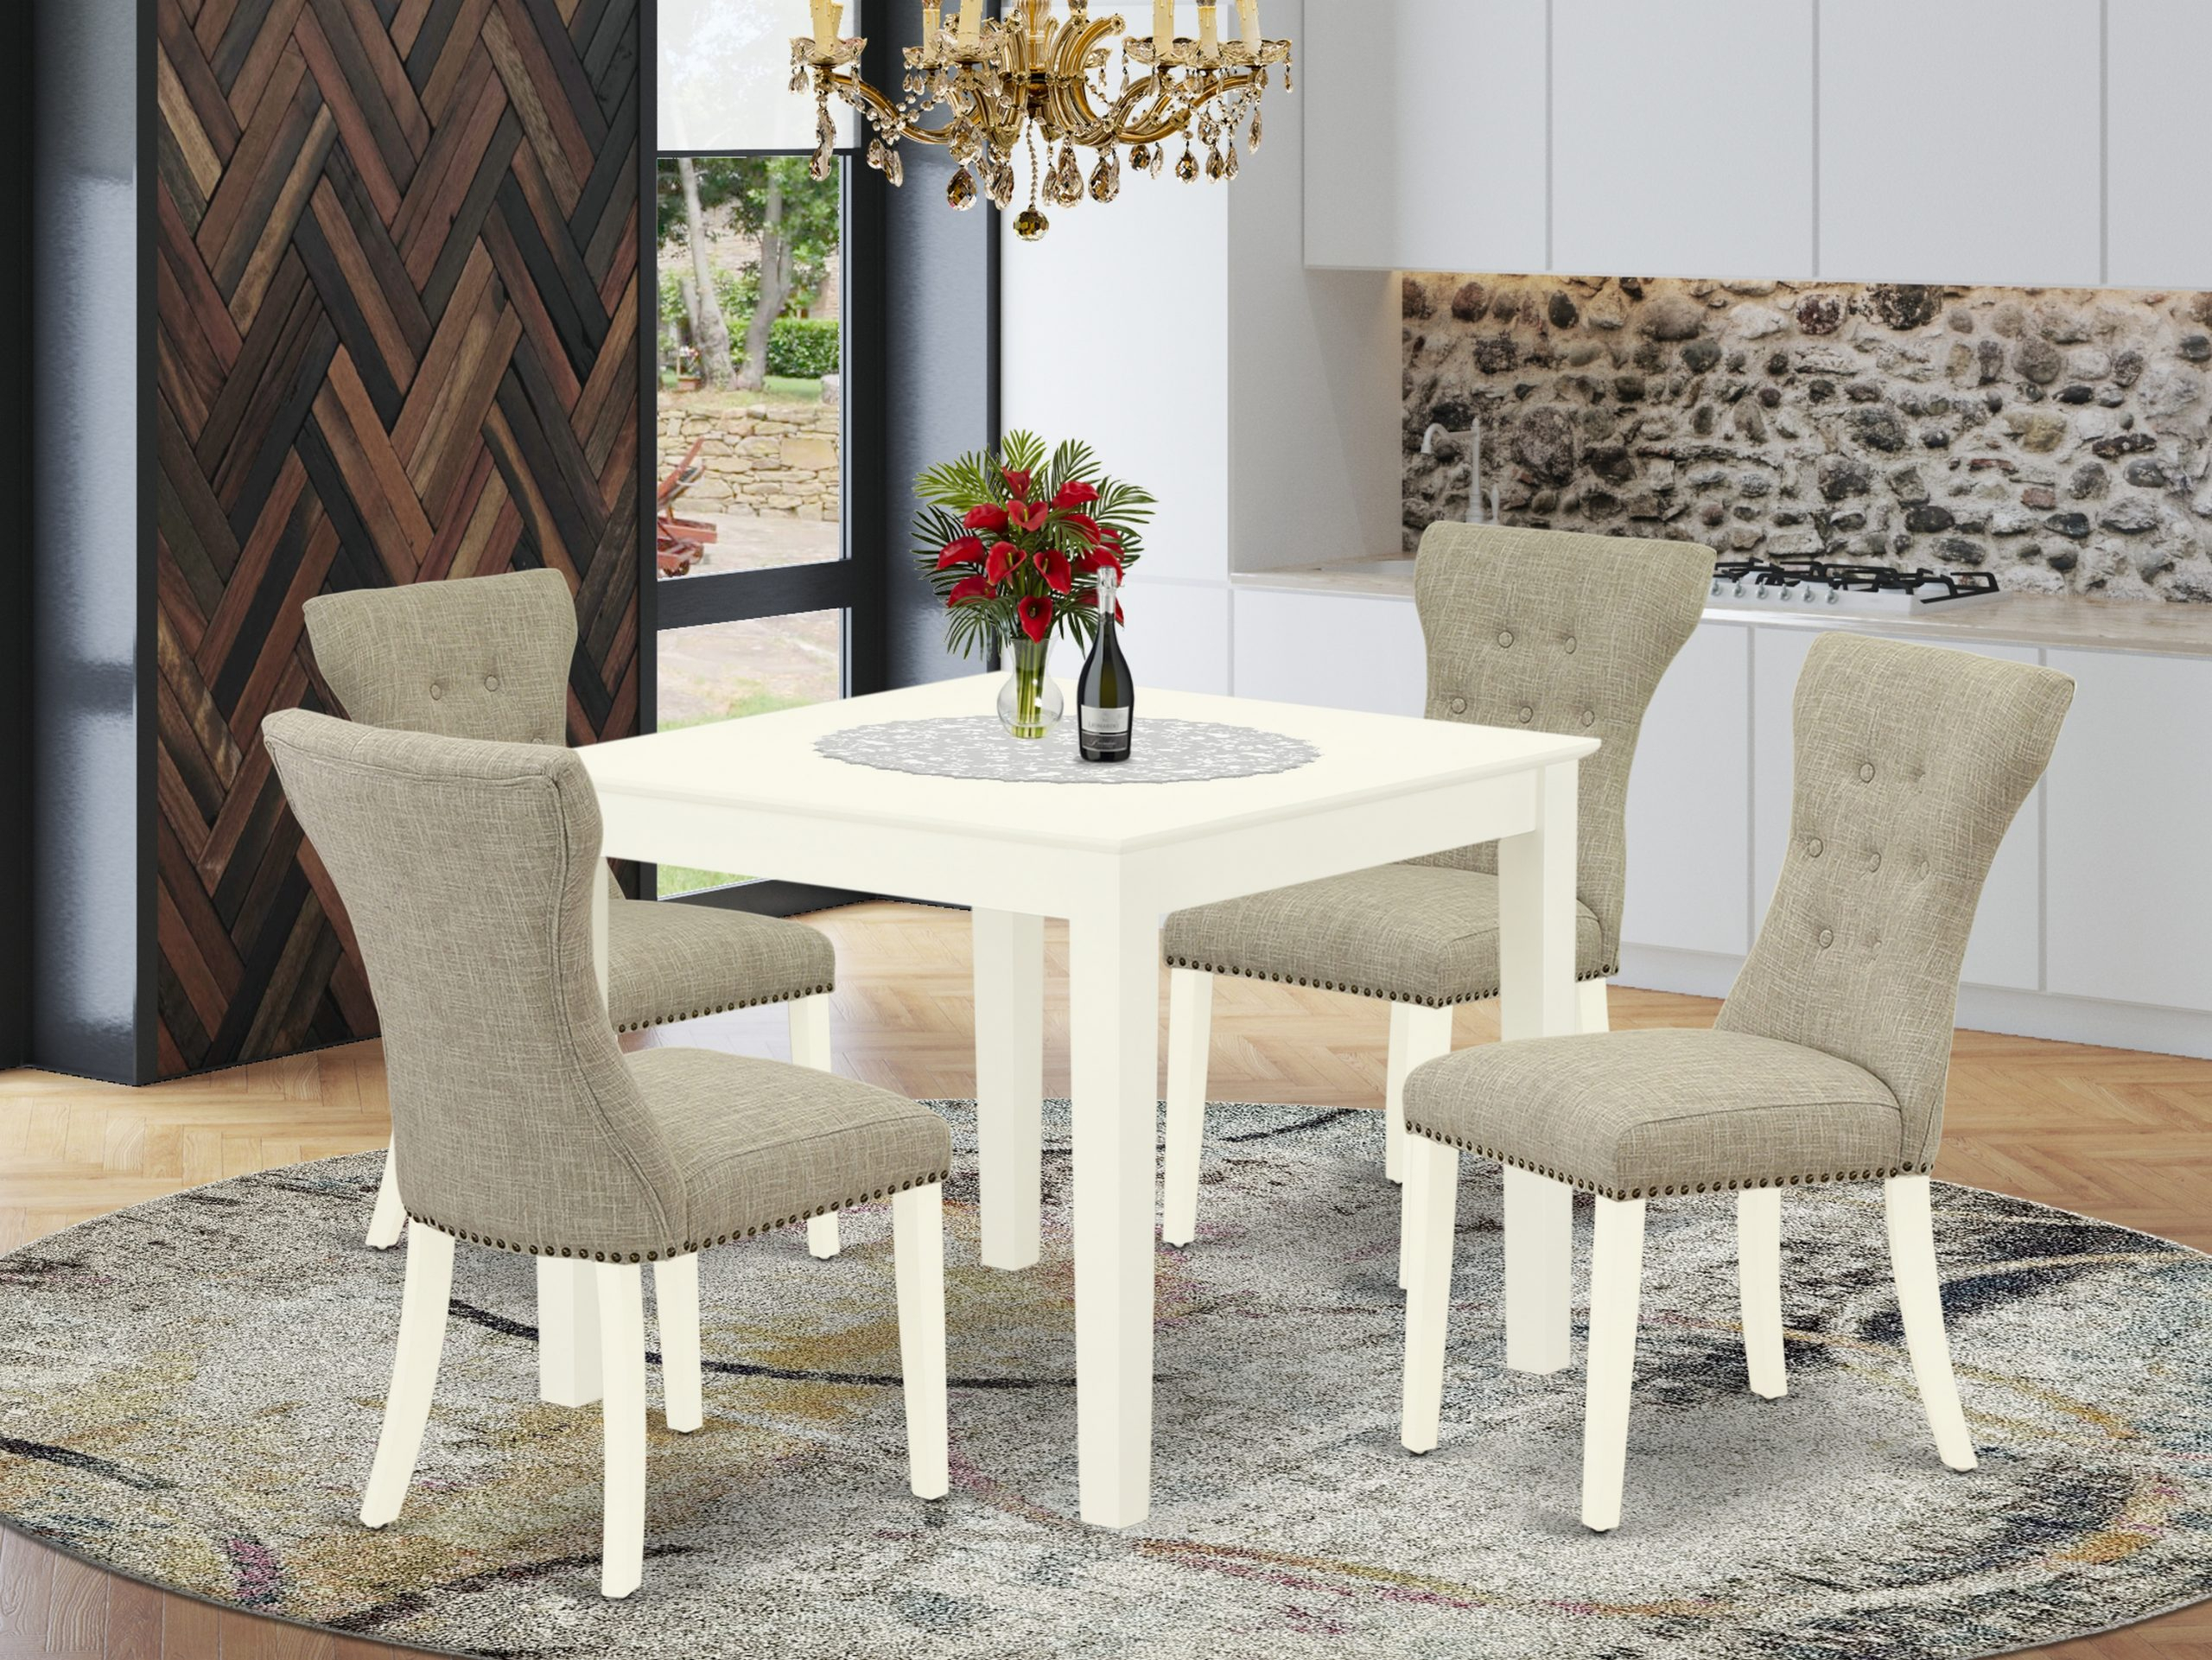 East West Furniture Oxga5 Lwh 35 5 Piece Kitchen Table Set Intended For Most Popular Montauk (View 9 of 15)